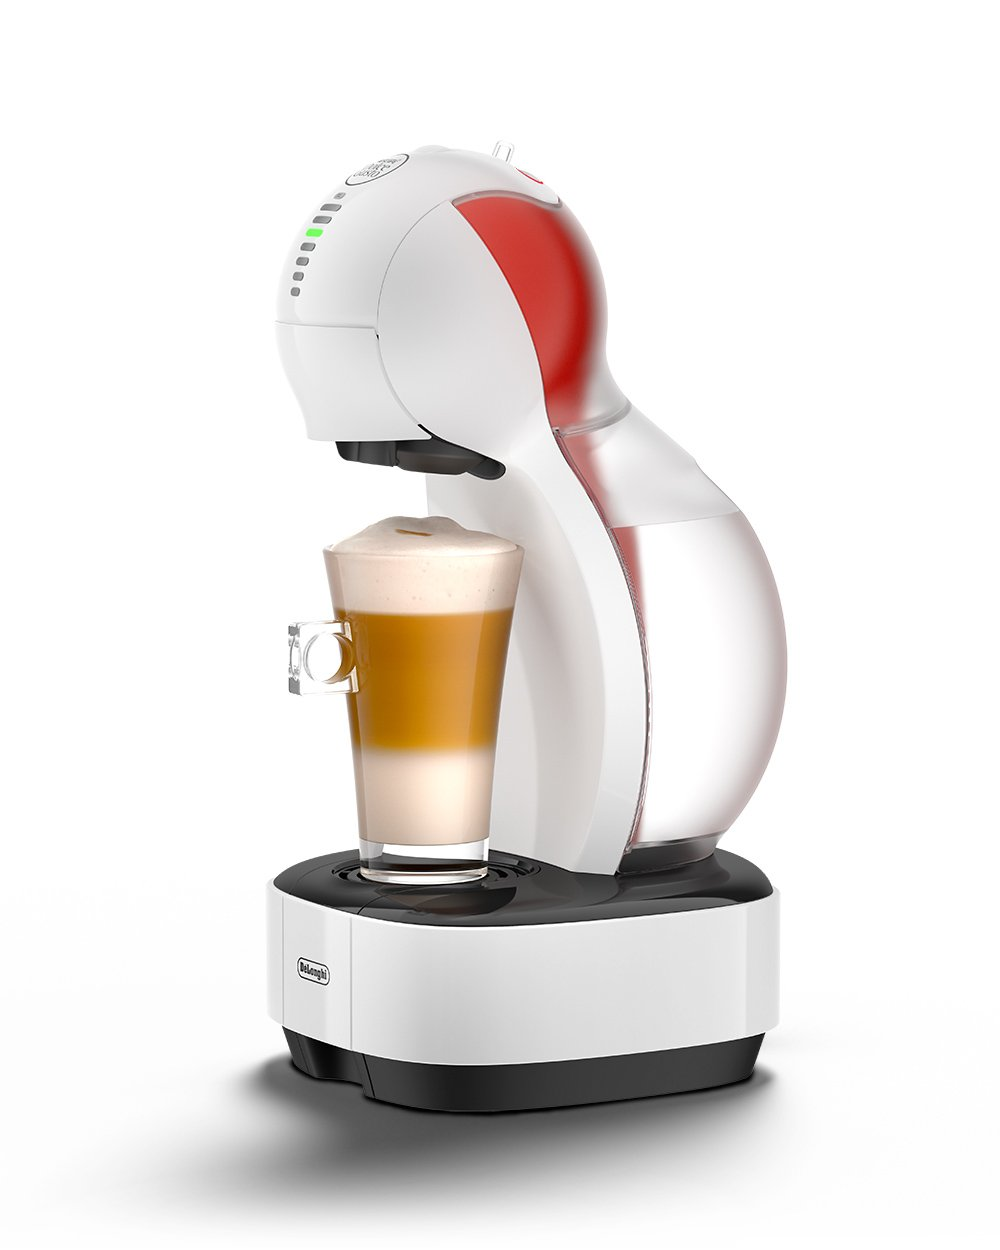 Nescafé Dolce Gusto by De'Longhi Colors EDG355.W1 Coffee Machine - White De'Longhi 0132180603